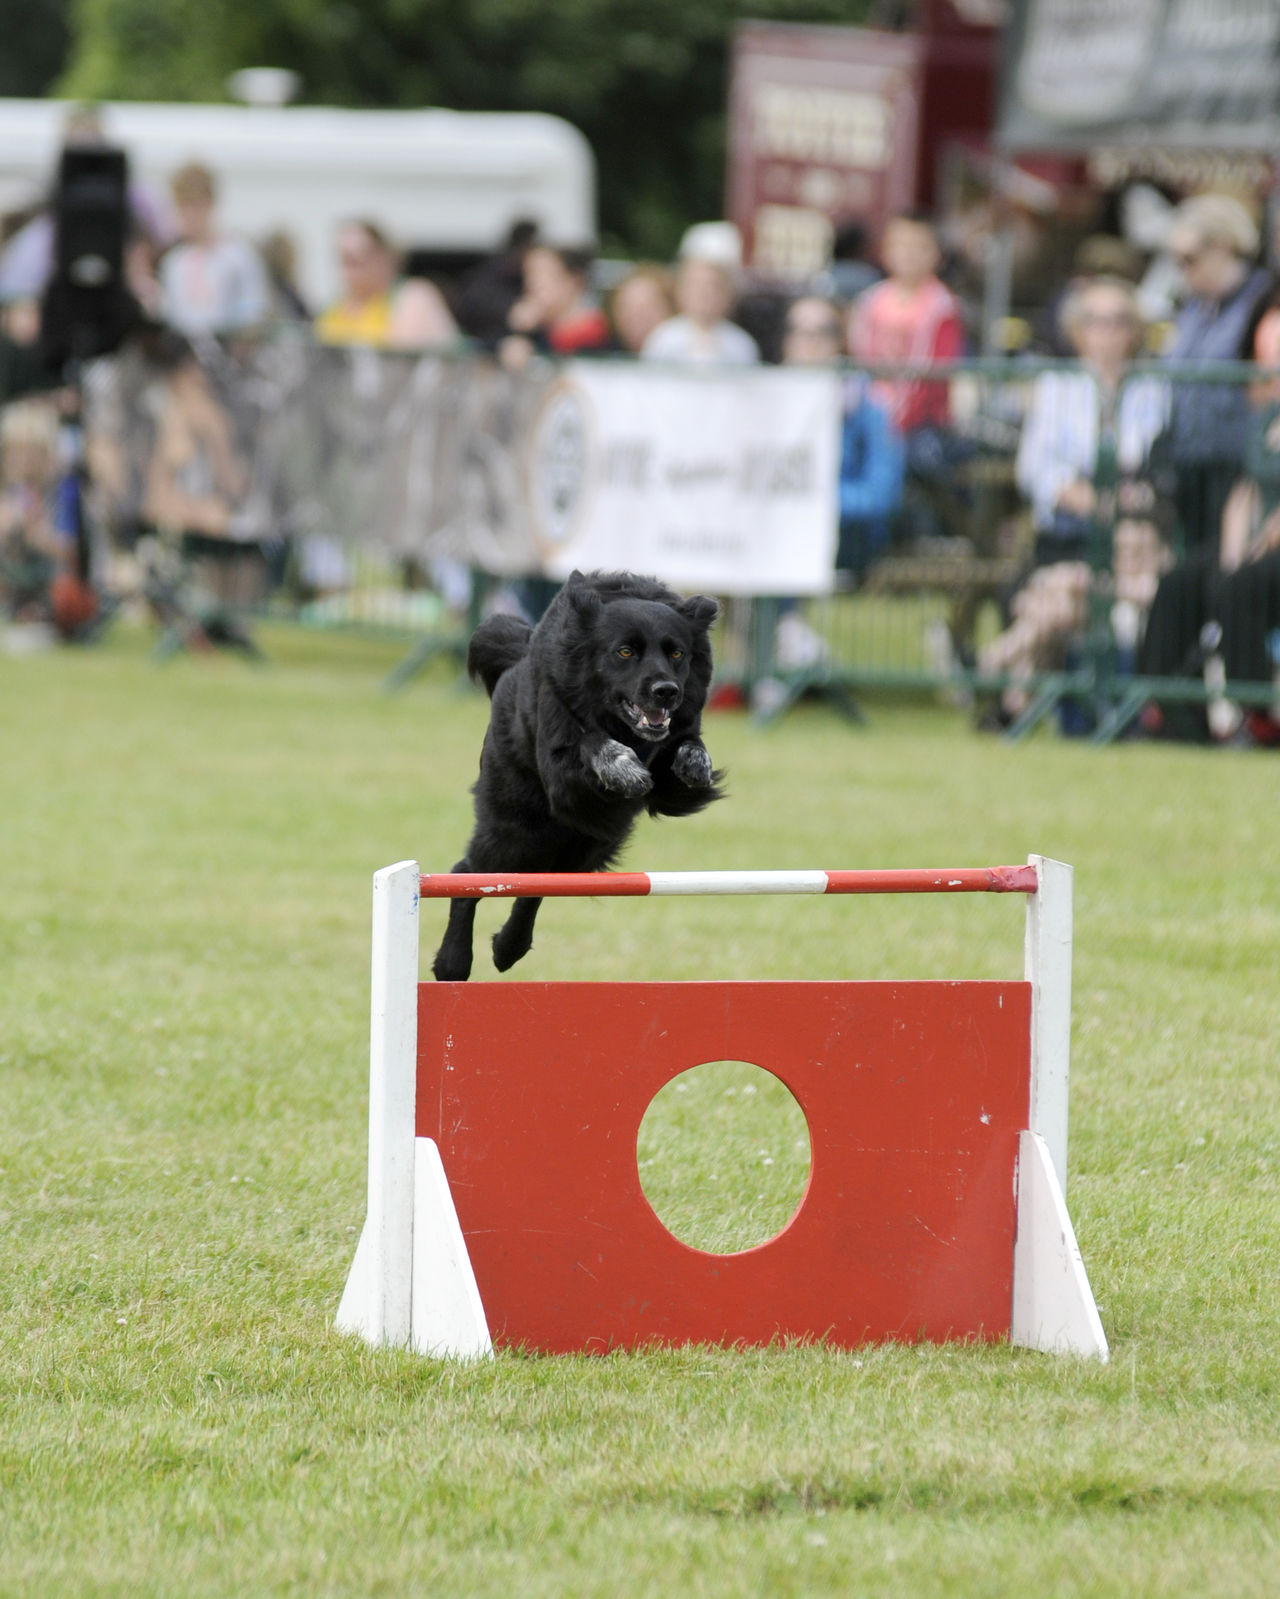 Border Collie Country Fair Day Out Dog Agility Dog In Action Dog Jumping Dog Photography Dogs